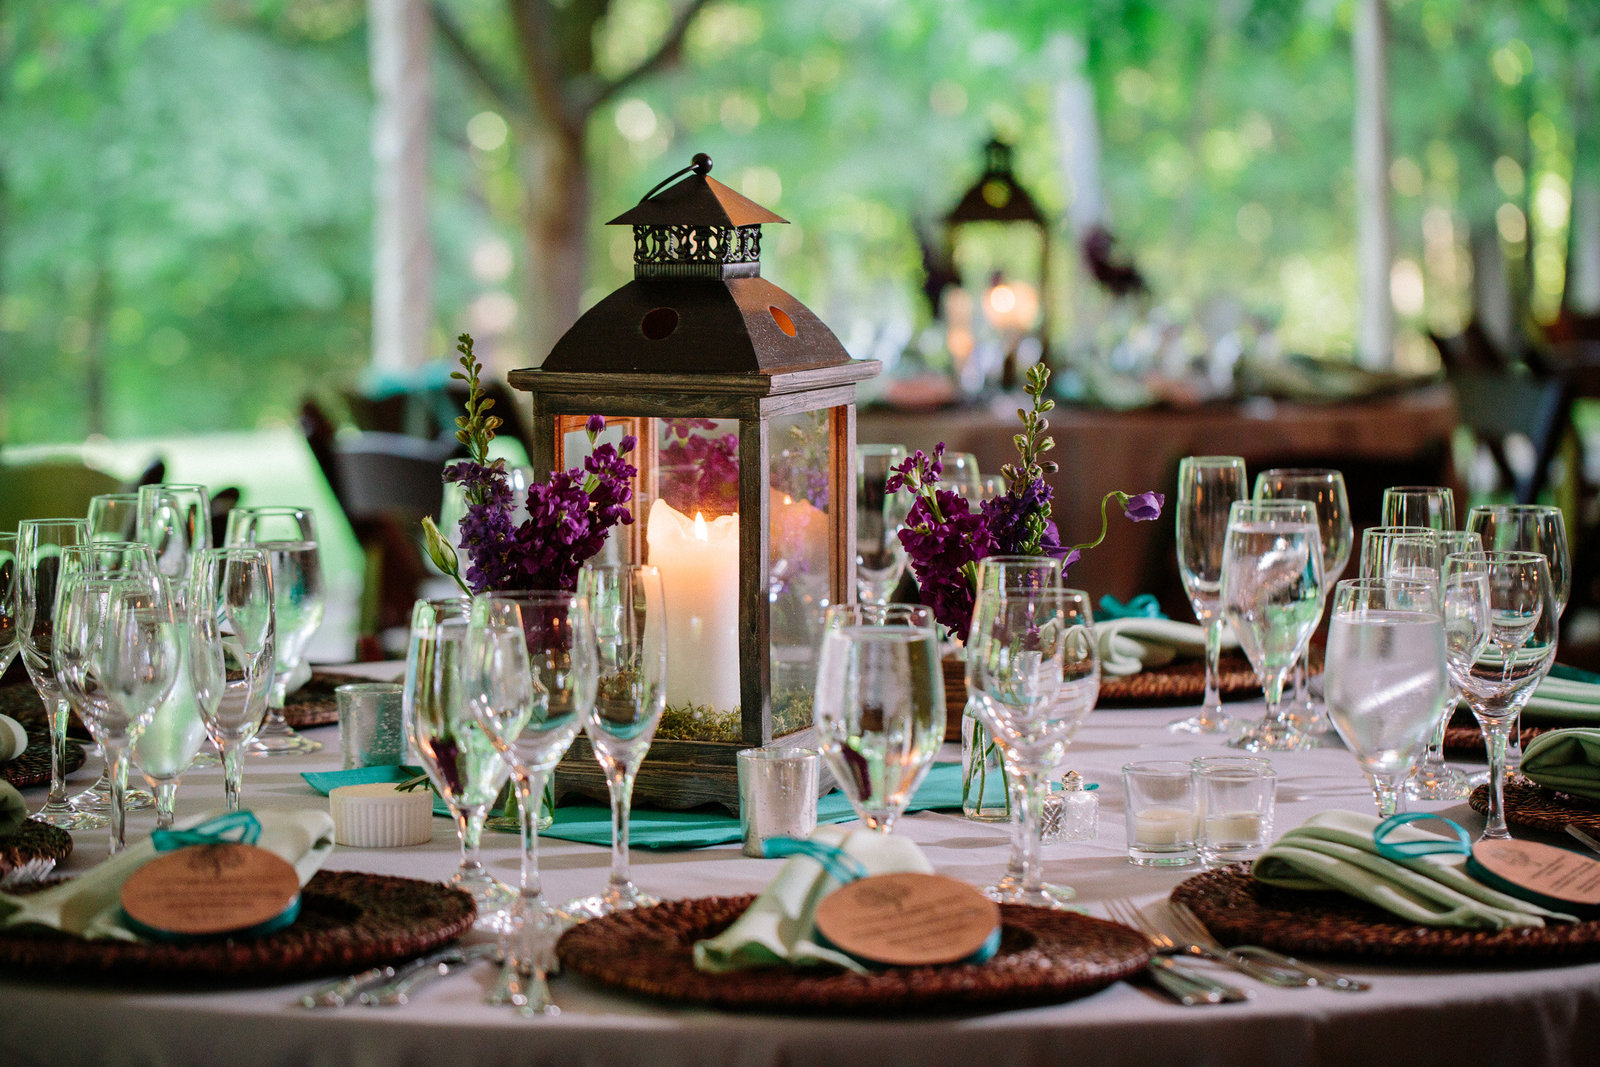 Woodend Sanctuary Table Centerpiece with laterns